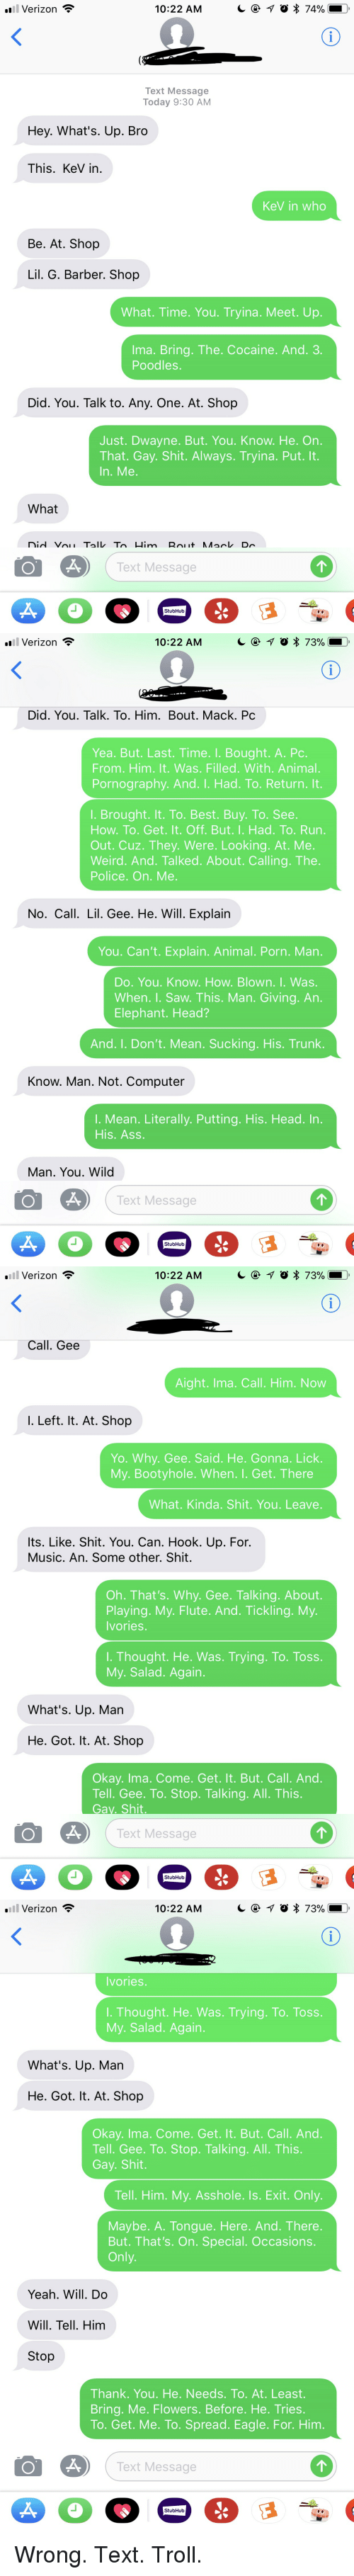 Barber, Best Buy, and Funny: .il Verizon  10:22 AM  Text Message  Today 9:30 AM  Hey. What's. Up. Bro  This. KeV in.  KeV in who  Be. At. Shop  Lil. G. Barber. Shojp  What. Time. You. Tryina. Meet. Up.  Ima. Bring. The. Cocaine. And. 3  Poodles  Did. You. Talk to. Any. One. At. Shop  Just. Dwayne. But. You. Know. He. On.  That. Gay. Shit. Always. Tryina. Put. It.  In. Me.  What  ext Message  StubHub   Verizon  10:22 AM  Did. You. Talk. To. Him. Bout. Mack. Pc  Yea. But. Last. Time. I. Bought. A. Pc  From. Him. It. Was. Filled. With. Animal.  Pornography. And. I. Had. To. Return. It  I. Brought. It. To. Best. Buy. To. See  How. To. Get. It. Off. But. I. Had. To. Run  Out. Cuz. They. Were. Looking. At. Me  Weird. And. Talked. About. Calling. The  Police. On. Me  No. Call. Lil. Gee. He. Will. Explain  You. Can't. Explain. Animal. Porn. Man  Do. You.Know. How. Blown. I. Was  When. I. Saw. This. Man. Giving. An  Elephant. Head?  And. I. Don't. Mean. Sucking. His. Trunk  Know. Man. Not. Computer  I. Mean. Literally. Putting. His. Head. In  His. Ass.  Man. You. Wild  ext Message  StubHub   Verizon  10:22 AM  Call. Gee  Aight. Ima. Call. Him. Now  I. Left. lt. At. Shop  Yo. Whv. Gee. Said. He. Gonna. Lick  My. Bootyhole. When. I. Get. There  What. Kinda. Shit. You. Leave  lts. Like. Shit. You. Can. Hook. Up. For.  Music. An. Some other. Shit.  Oh. That's. Why. Gee. Talking. About.  Playing. My. Flute. And. Tickling. My  Ivories  I. Thought. He. Was. Trying. To. Toss.  My. Salad. Again  What's. Up. Man  He. Got. It. At. Shop  Okay. Ima. Come. Get. It. But. Call. And  Tell. Gee. To. Stop. Talking. All. This  Gav. Shit  ext Message  StubHub   Verizon  10:22 AM  Ivories  . Thought. He. Was. Trying. To. Toss.  My. Salad. Again  What's. Up. Man  He. Got. It. At. Shop  Okay. Ima. Come. Get. It. But. Call. And  Tell. Gee. To. Stop. Talking. All. This.  Gay. Shit  Tell. Him. My. Asshole. Is. Exit. Only  Maybe. A. Tongue. Here. And. There  But. That's. On. Special.Occasions.  Only  Y